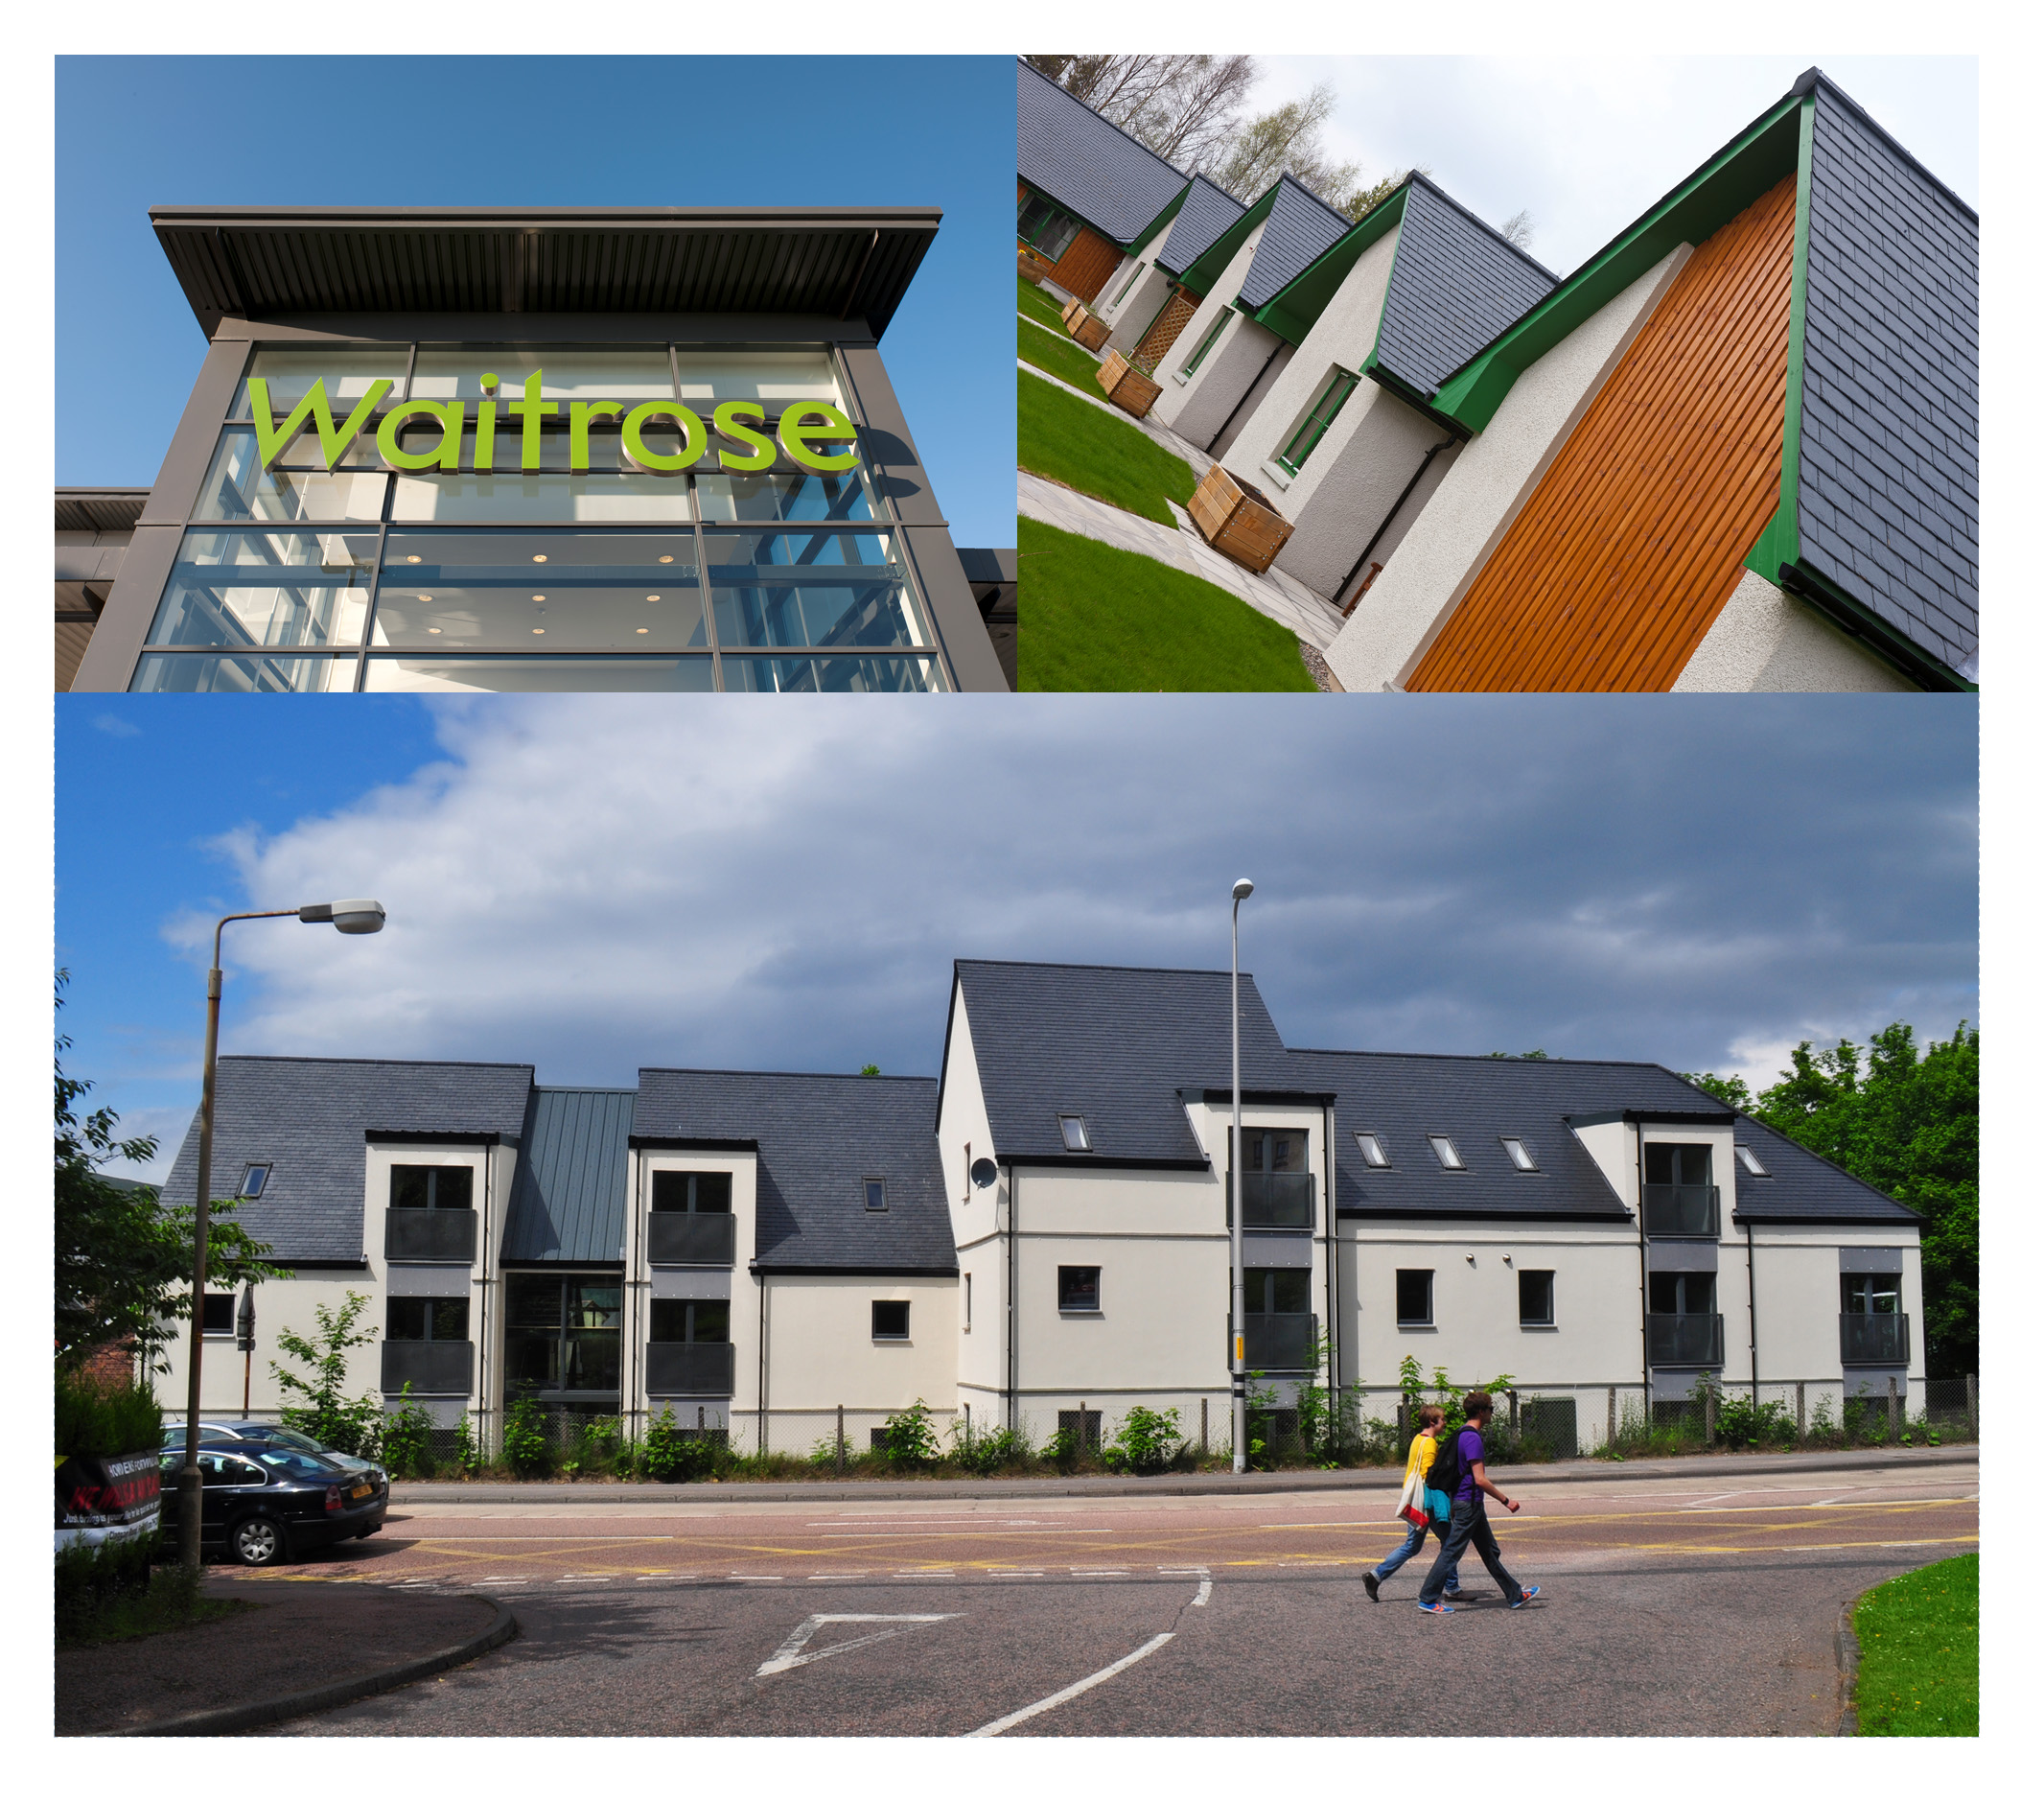 Bracewell have benefited as the government pushes to provide housing, and the practice have also been focusing on their commercial portfolio since their design work for Waitrose in 2011